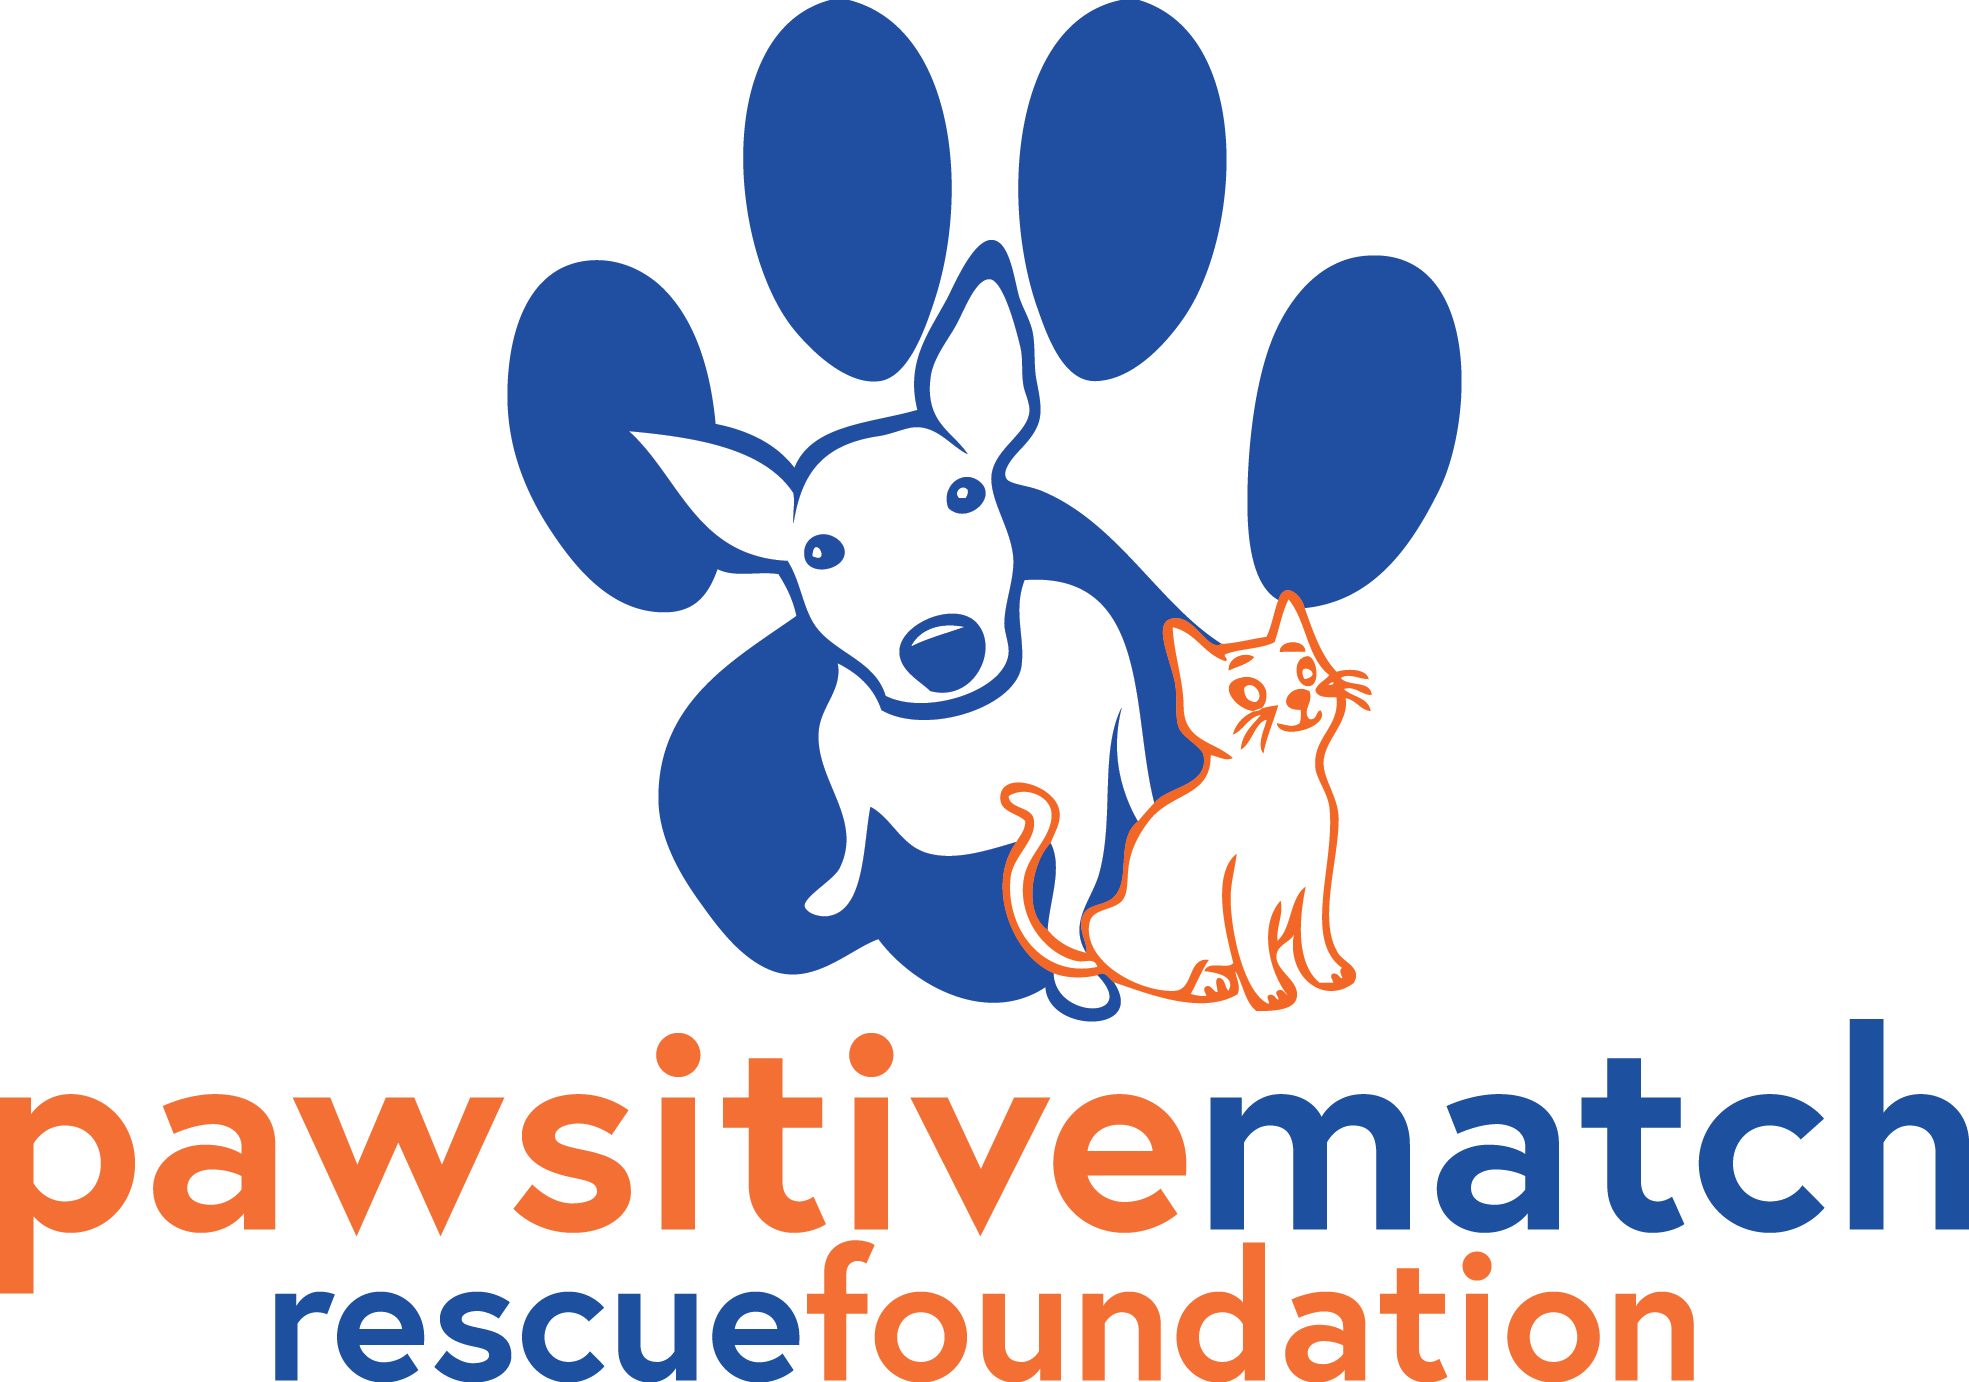 Pawsitive Match Rescue Foundation – Calgary Based Dog and